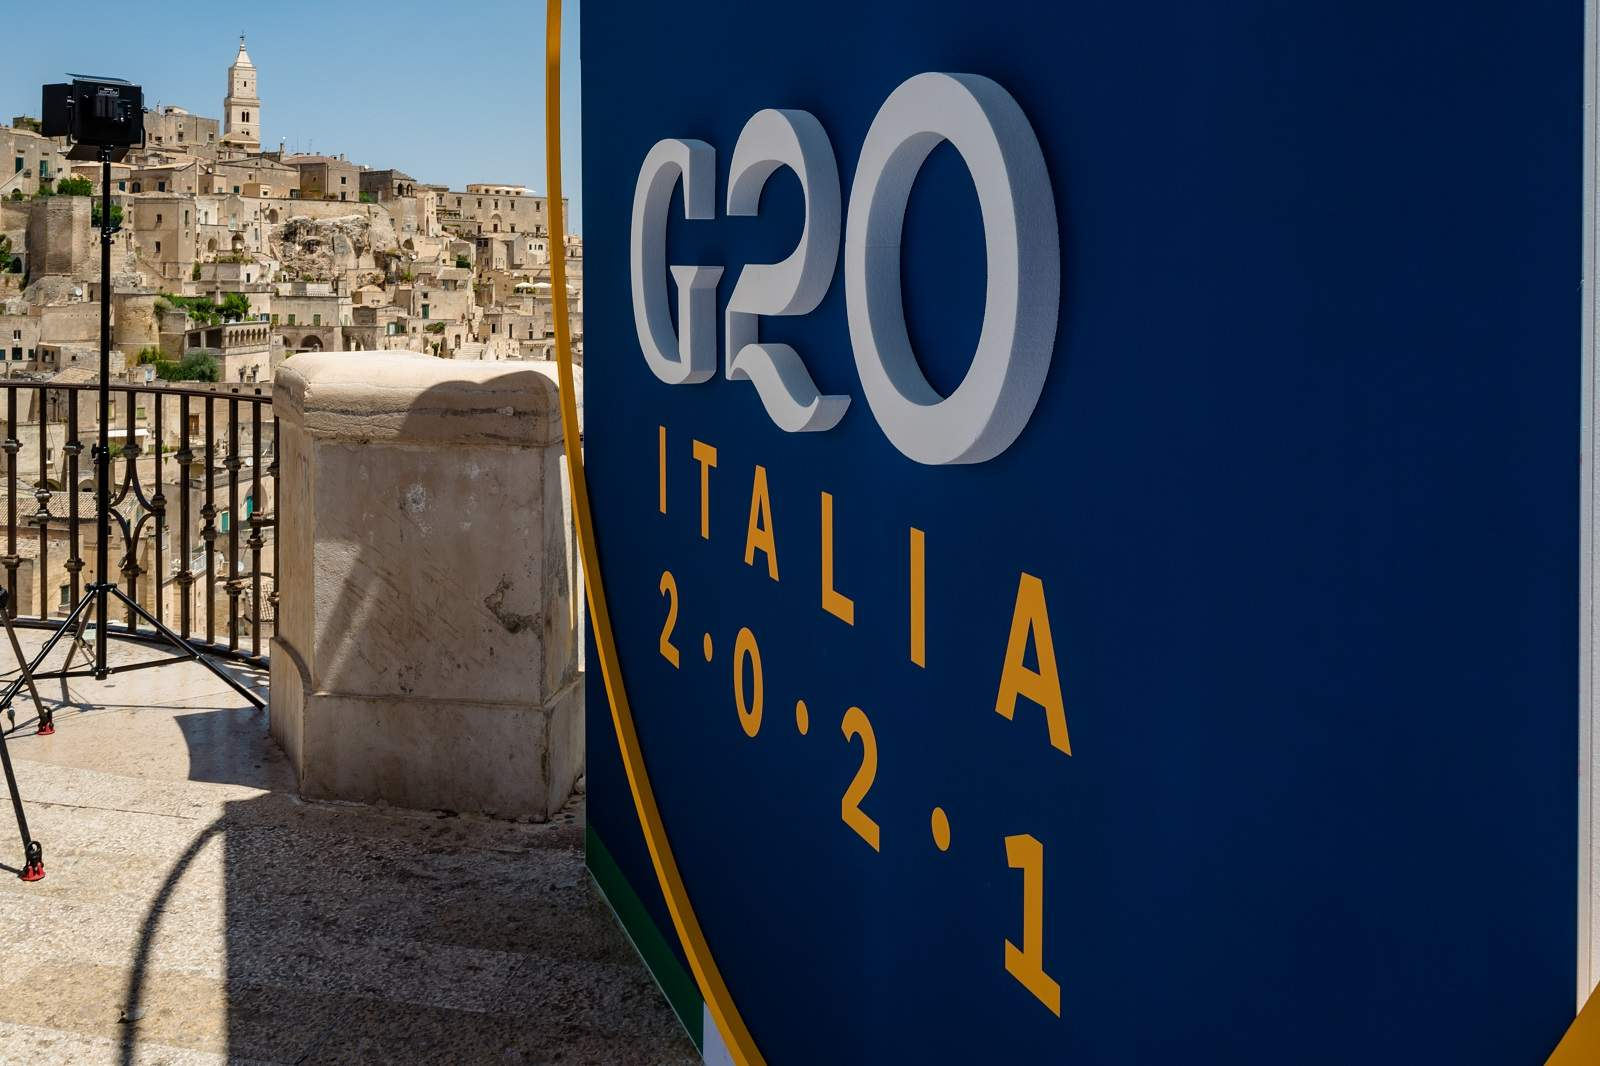 This year's G20 will take place in Rome in October (Davide Pischettola/NurPhoto via Getty Images)